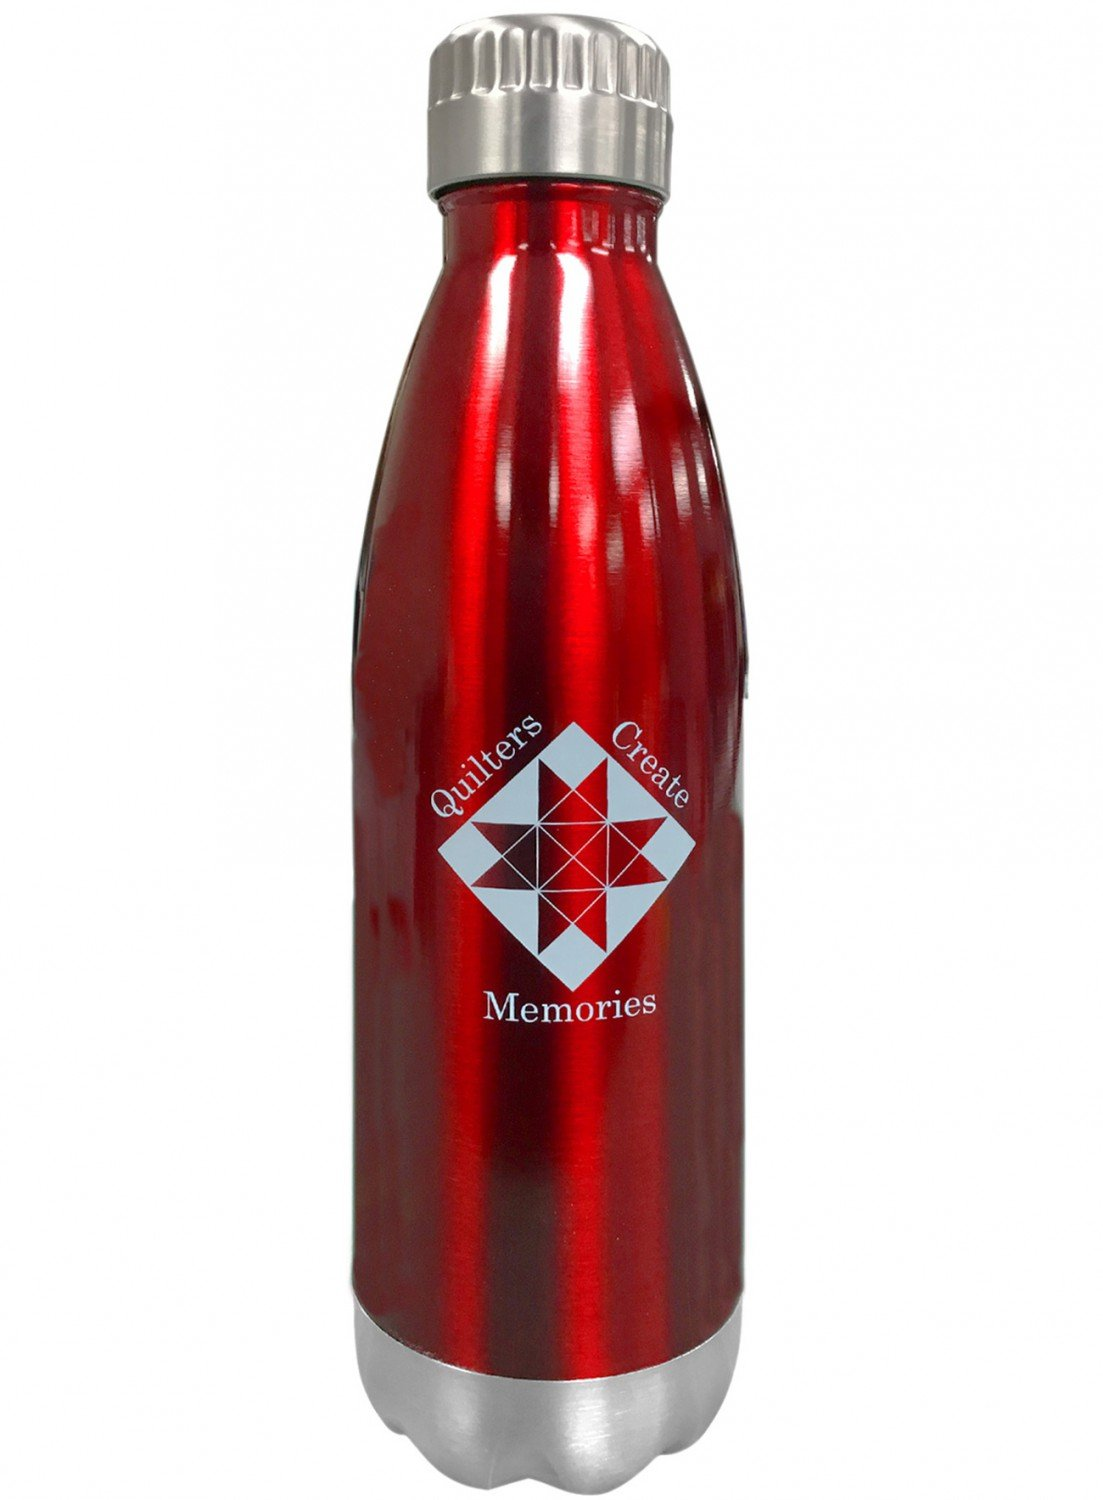 Quilter's Create Memories Sip Stainless Steel Water Bottle